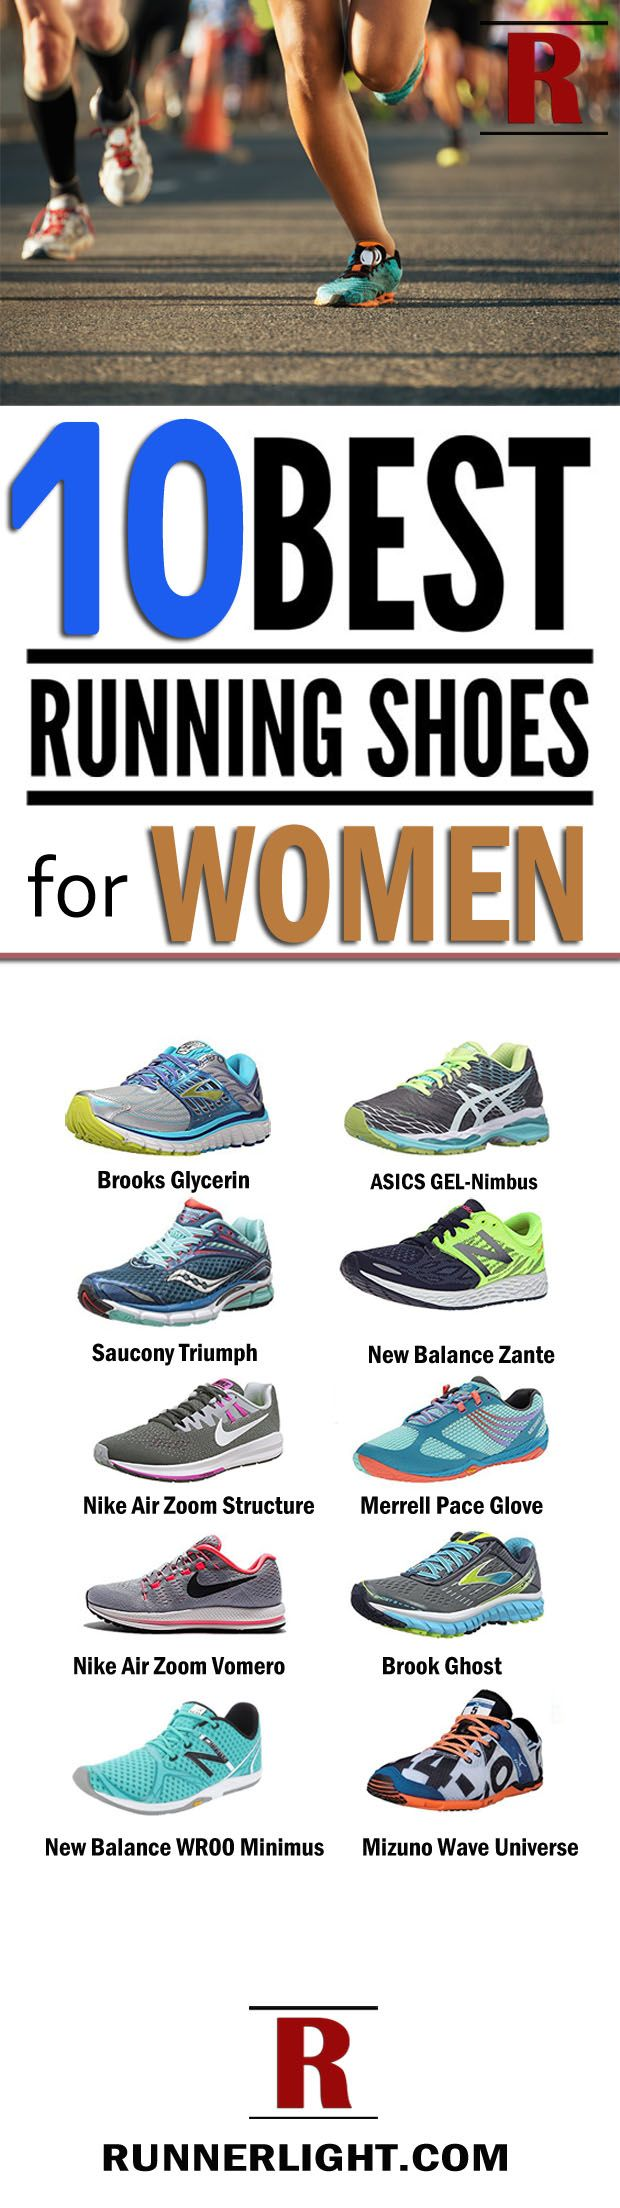 women's running shoes top rated